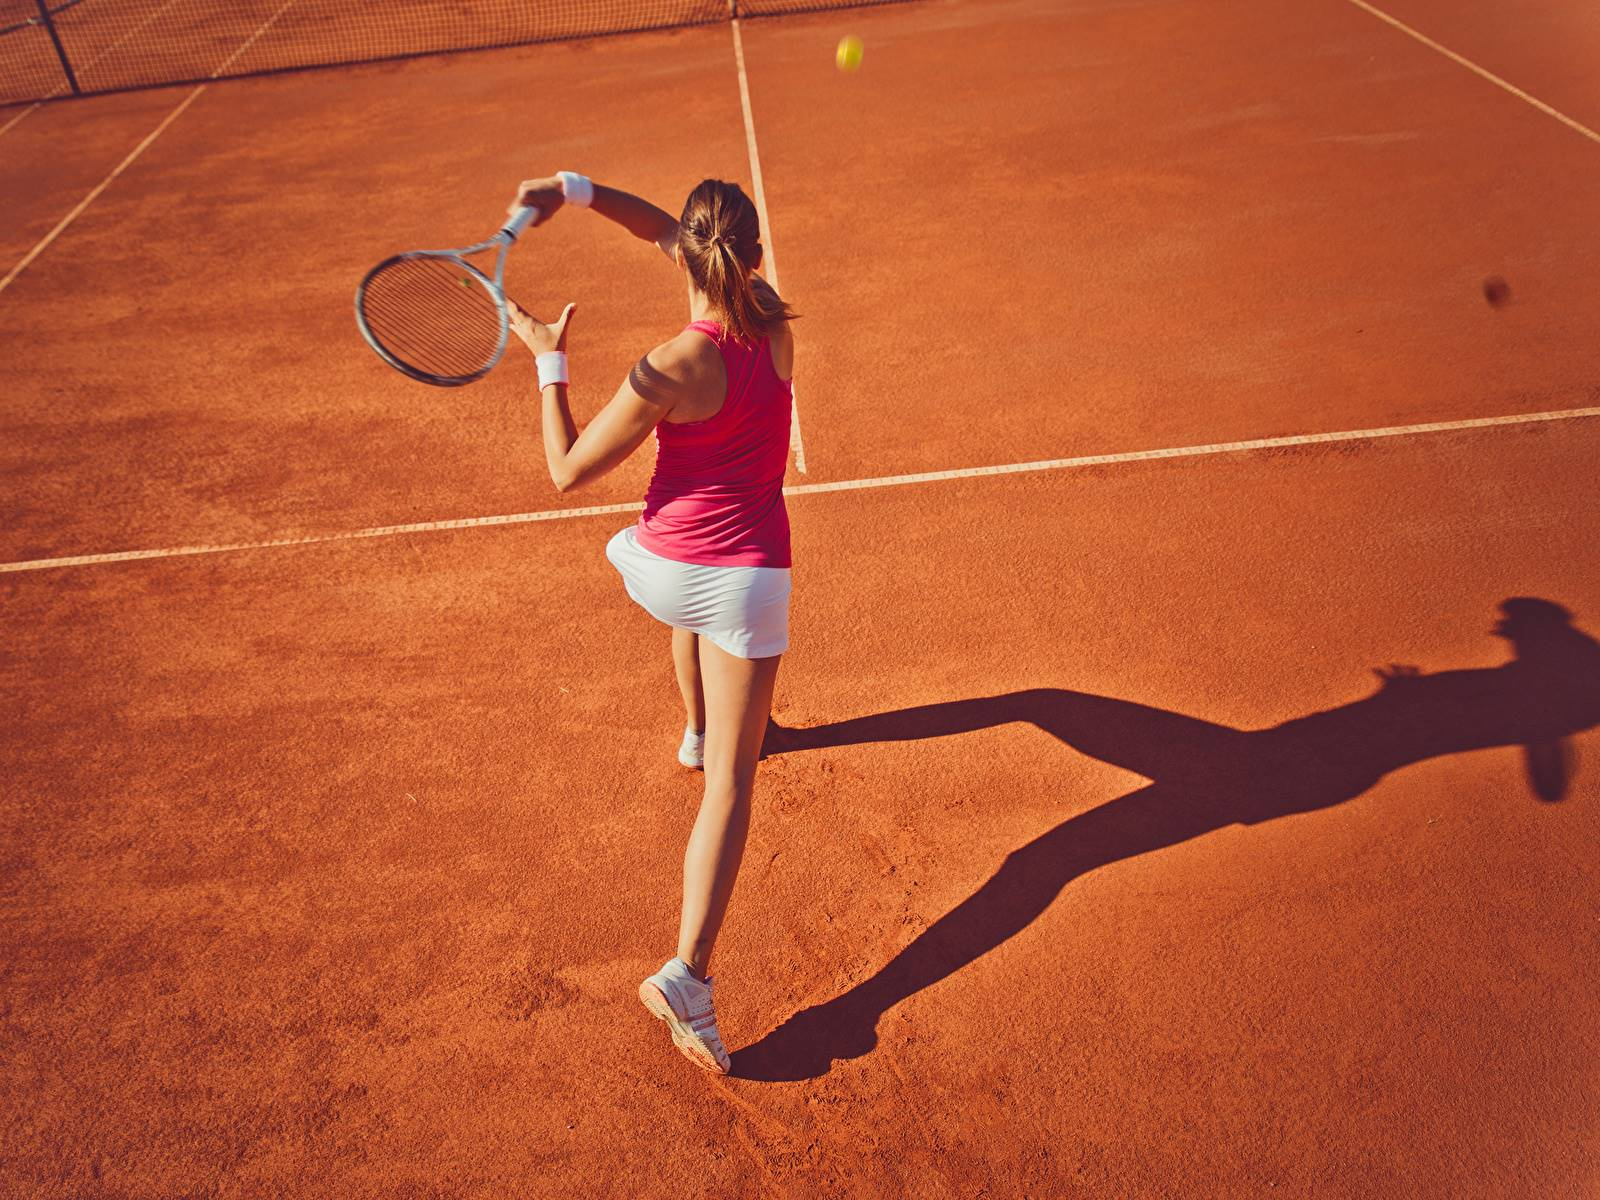 Tennis_Brown_haired_Back_view_Workout_551545_1600x1200.jpg